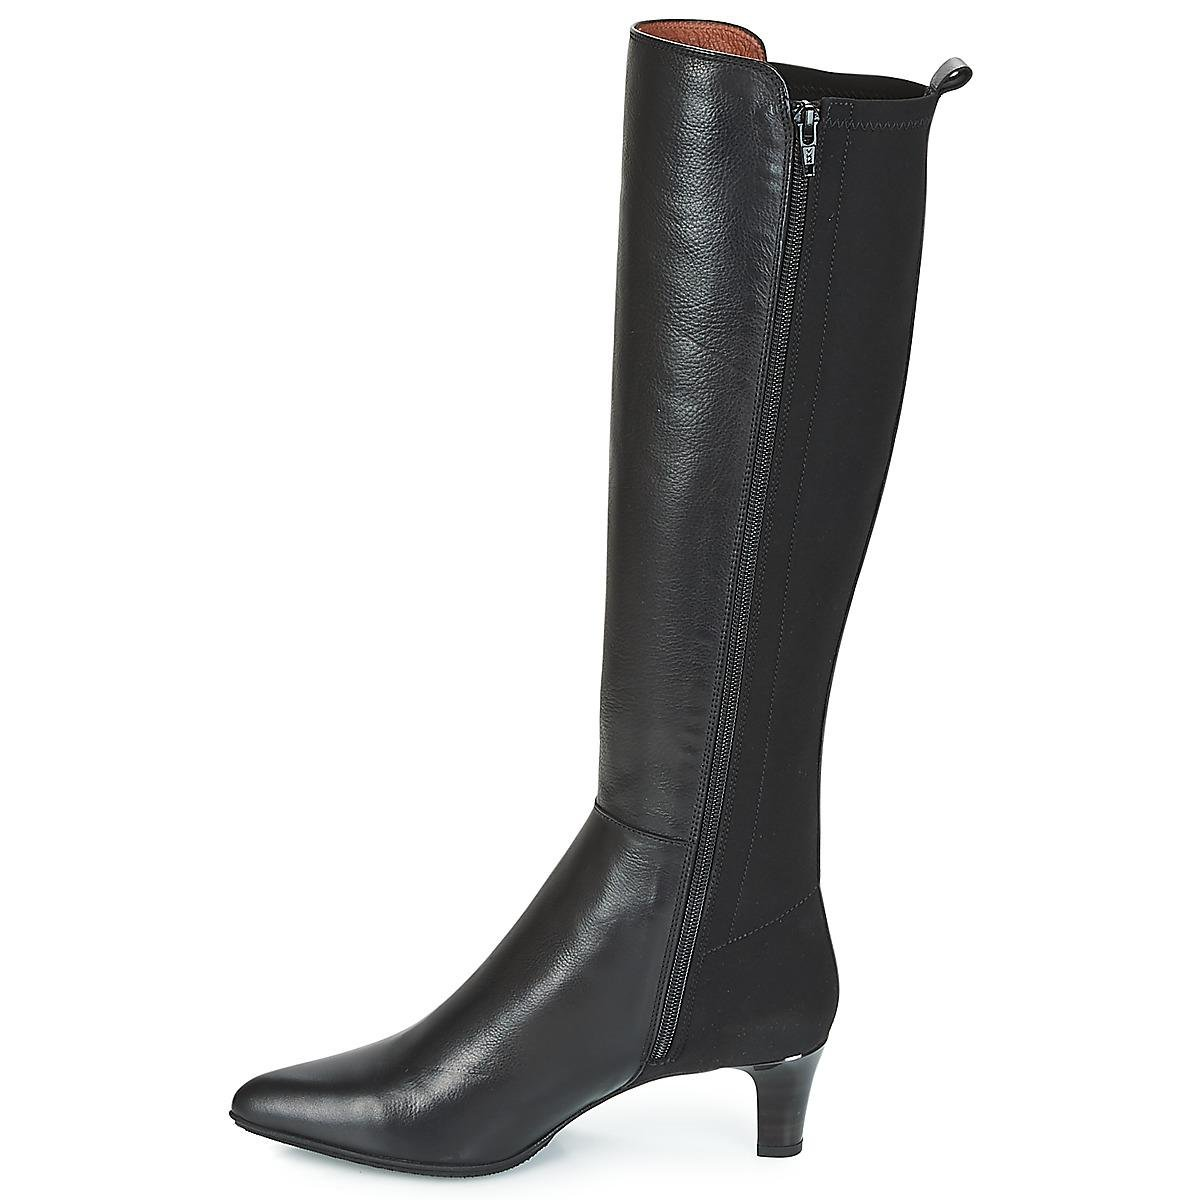 Hispanitas Leather Chilli High Boots in Black